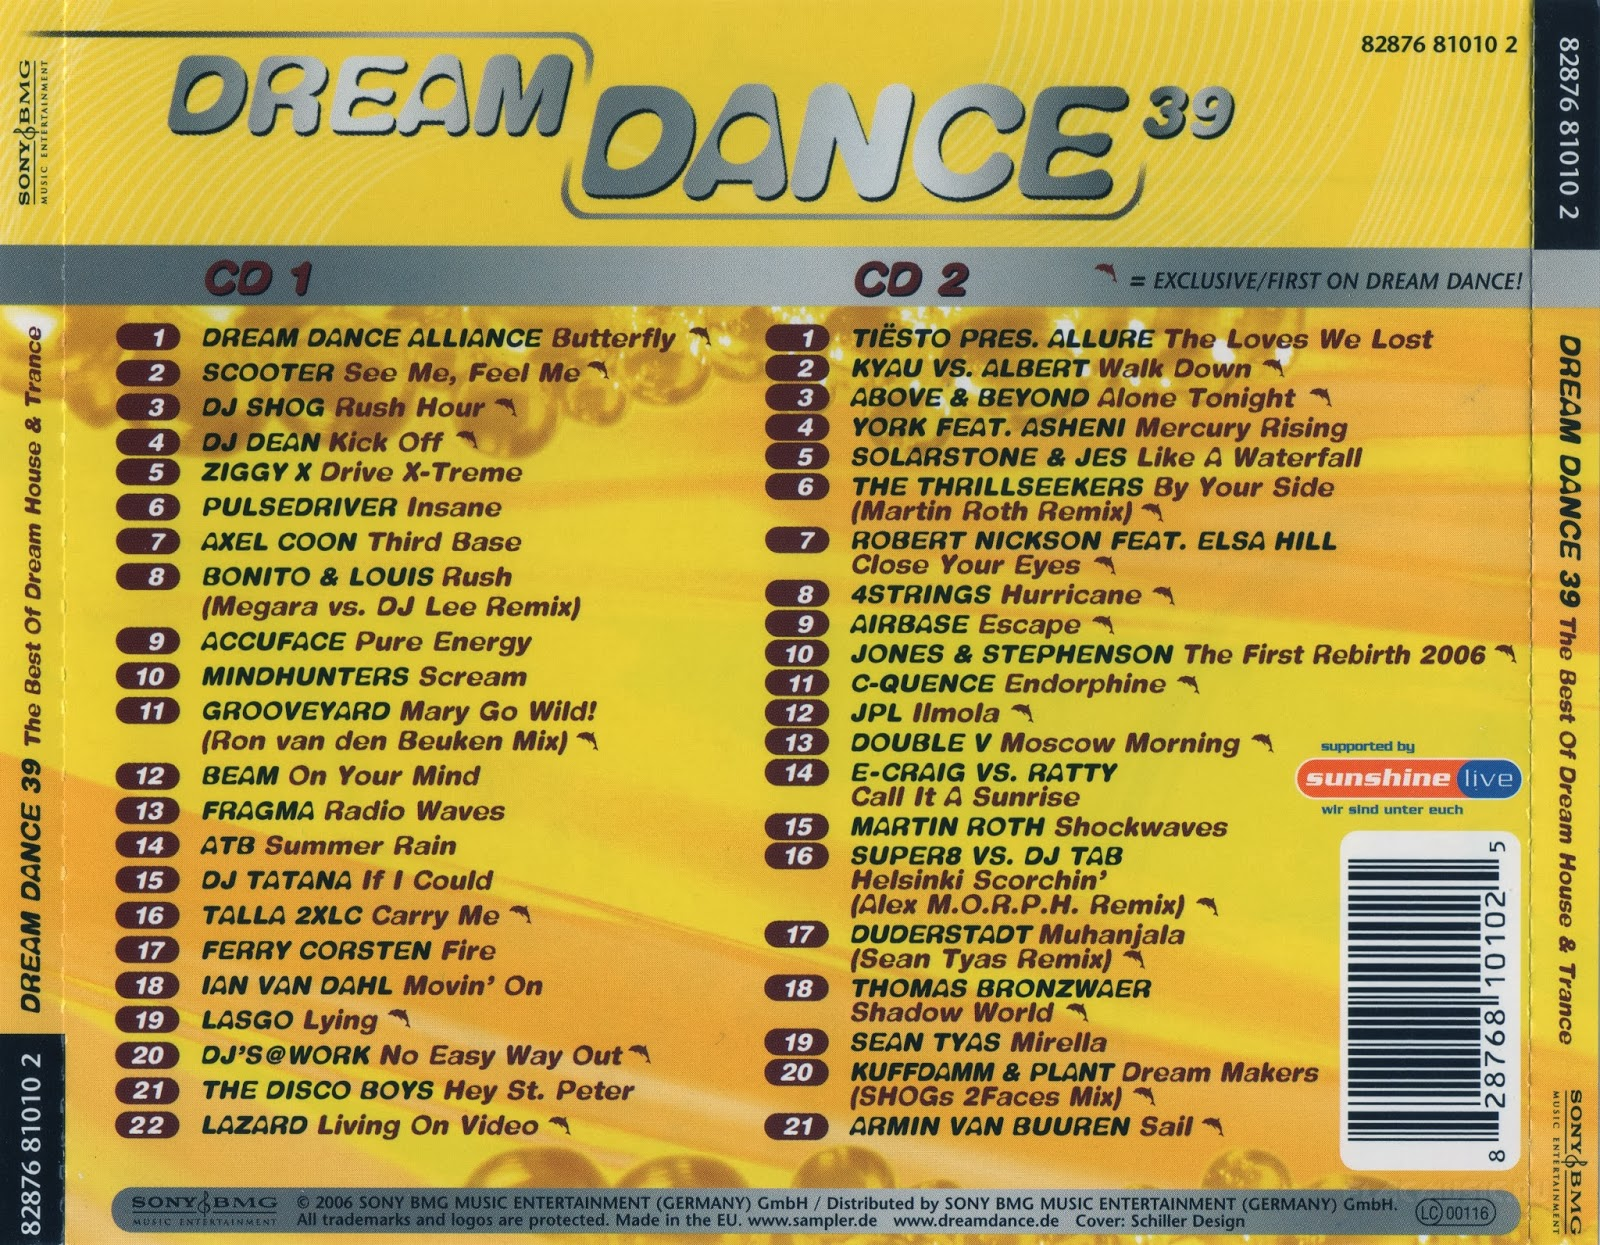 DJ Tatana - Dream Off